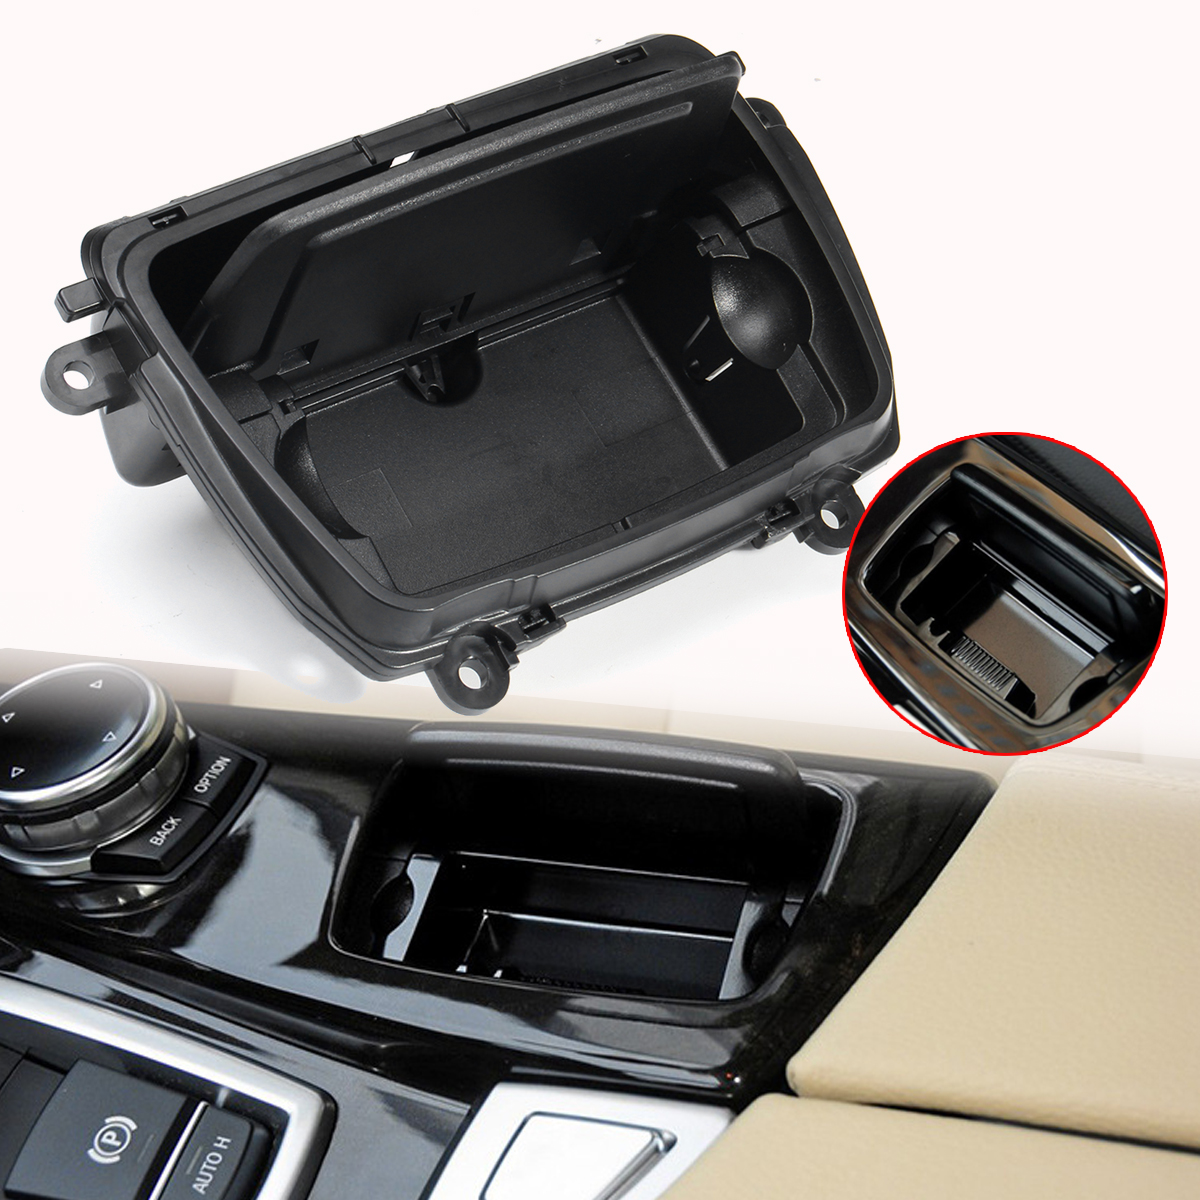 Automobile Ashtrays Black Car Center Console Ashtray F10 Assembly Ash Box Cover For BMW 5 Series F10 F11 F18 520 51169206347